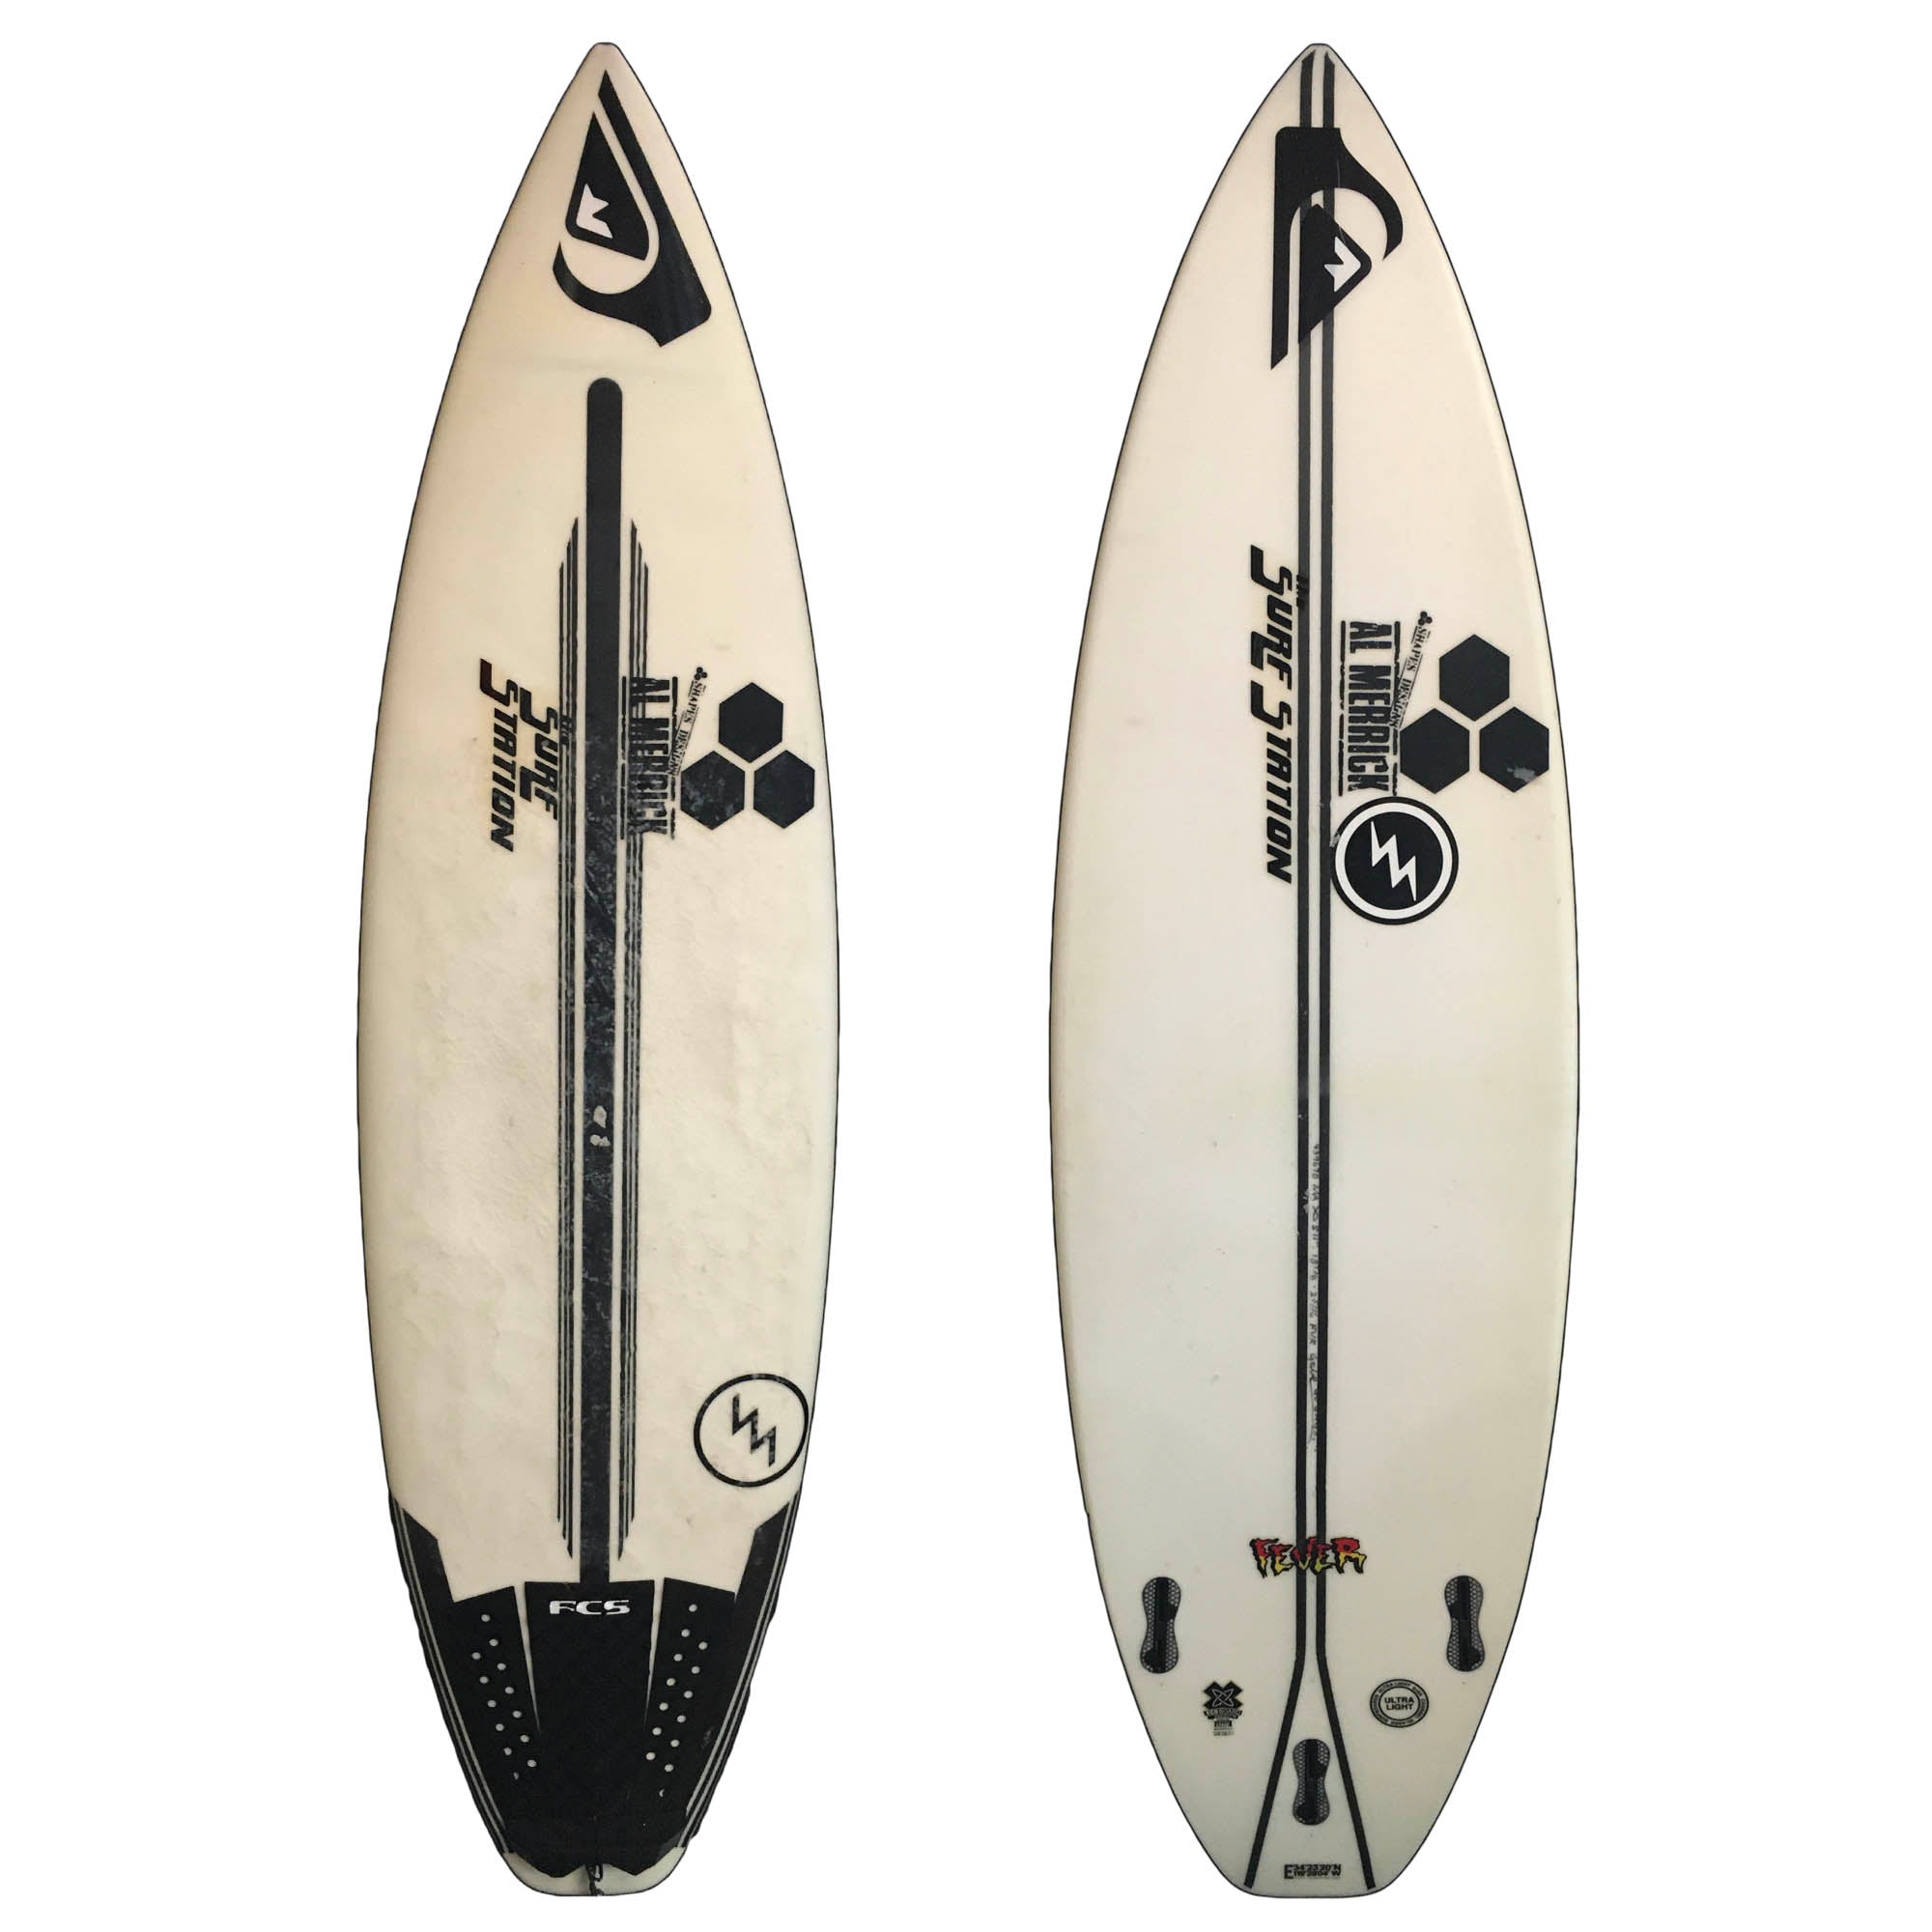 Channel Islands Fever 5'11 Used Surfboard